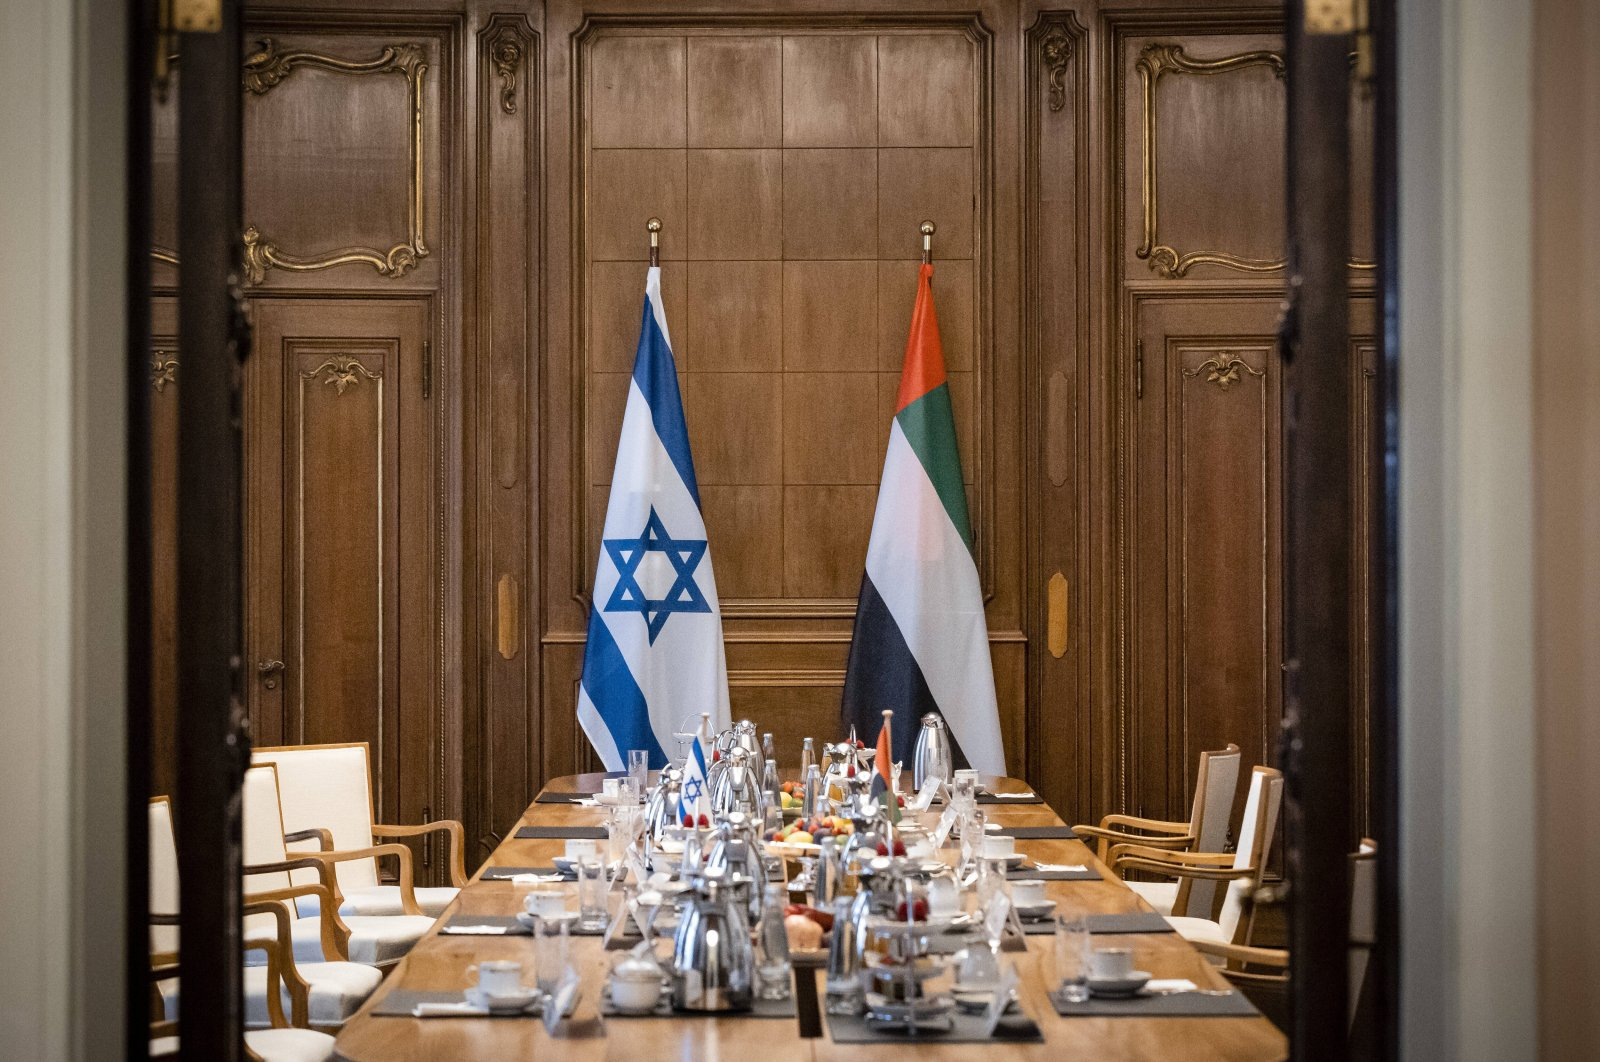 A table prepared ahead of a news conference by UAE Foreign Minister Abdullah bin Zayed al-Nahyan, Israeli Foreign Minister Gabriel Ashkenazi and German Foreign Minister Heiko Maas is seen in Berlin, Germany, Oct. 6, 2020. (Reuters Photo)